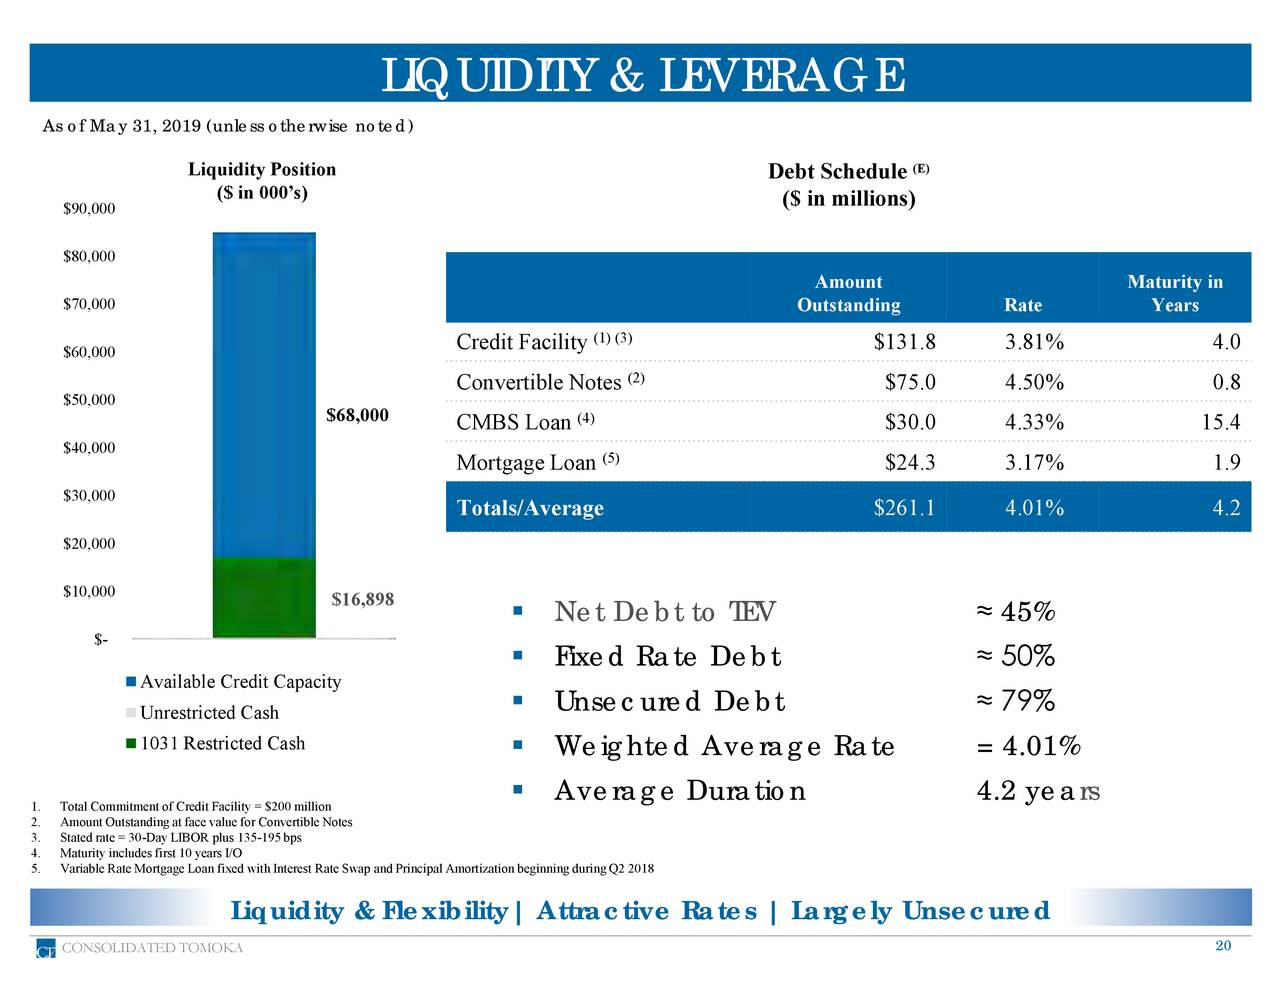 As of May 31, 2019 (unless otherwise noted) Liquidity Position Debt Schedule (E) ($ in 000's) $90,000 ($ in millions) $80,000 Amount Maturity in $70,000 Outstanding Rate Years (1) (3) $60,000 Credit Facility $131.8 3.81% 4.0 (2) $50,000 Convertible Notes $75.0 4.50% 0.8 $68,000 CMBS Loan (4) $30.0 4.33% 15.4 $40,000 Mortgage Loan (5) $24.3 3.17% 1.9 $30,000 Totals/Average $261.1 4.01% 4.2 $20,000 $10,000 $16,898 ▪ Net Debt to TEV ≈ 45% $- ▪ Fixed Rate Debt ≈ 50% Available Credit Capacity Unrestricted Cash ▪ Unsecured Debt ≈ 79% 1031 Restricted Cash ▪ Weighted Average Rate = 4.01% ▪ Average Duration 4.2 years 2. Amount Outstanding at face value for Convertible Notes 3. Stated rate = 30-Day LIBOR plus 135-195 bps 5. Variable Rate Mortgage Loan fixed with Interest Rate Swap and Principal Amortization beginning during Q2 2018 Liquidity & Flexibility| Attractive Rates | Largely Unsecured CONSOLIDATED TOMOKA 20